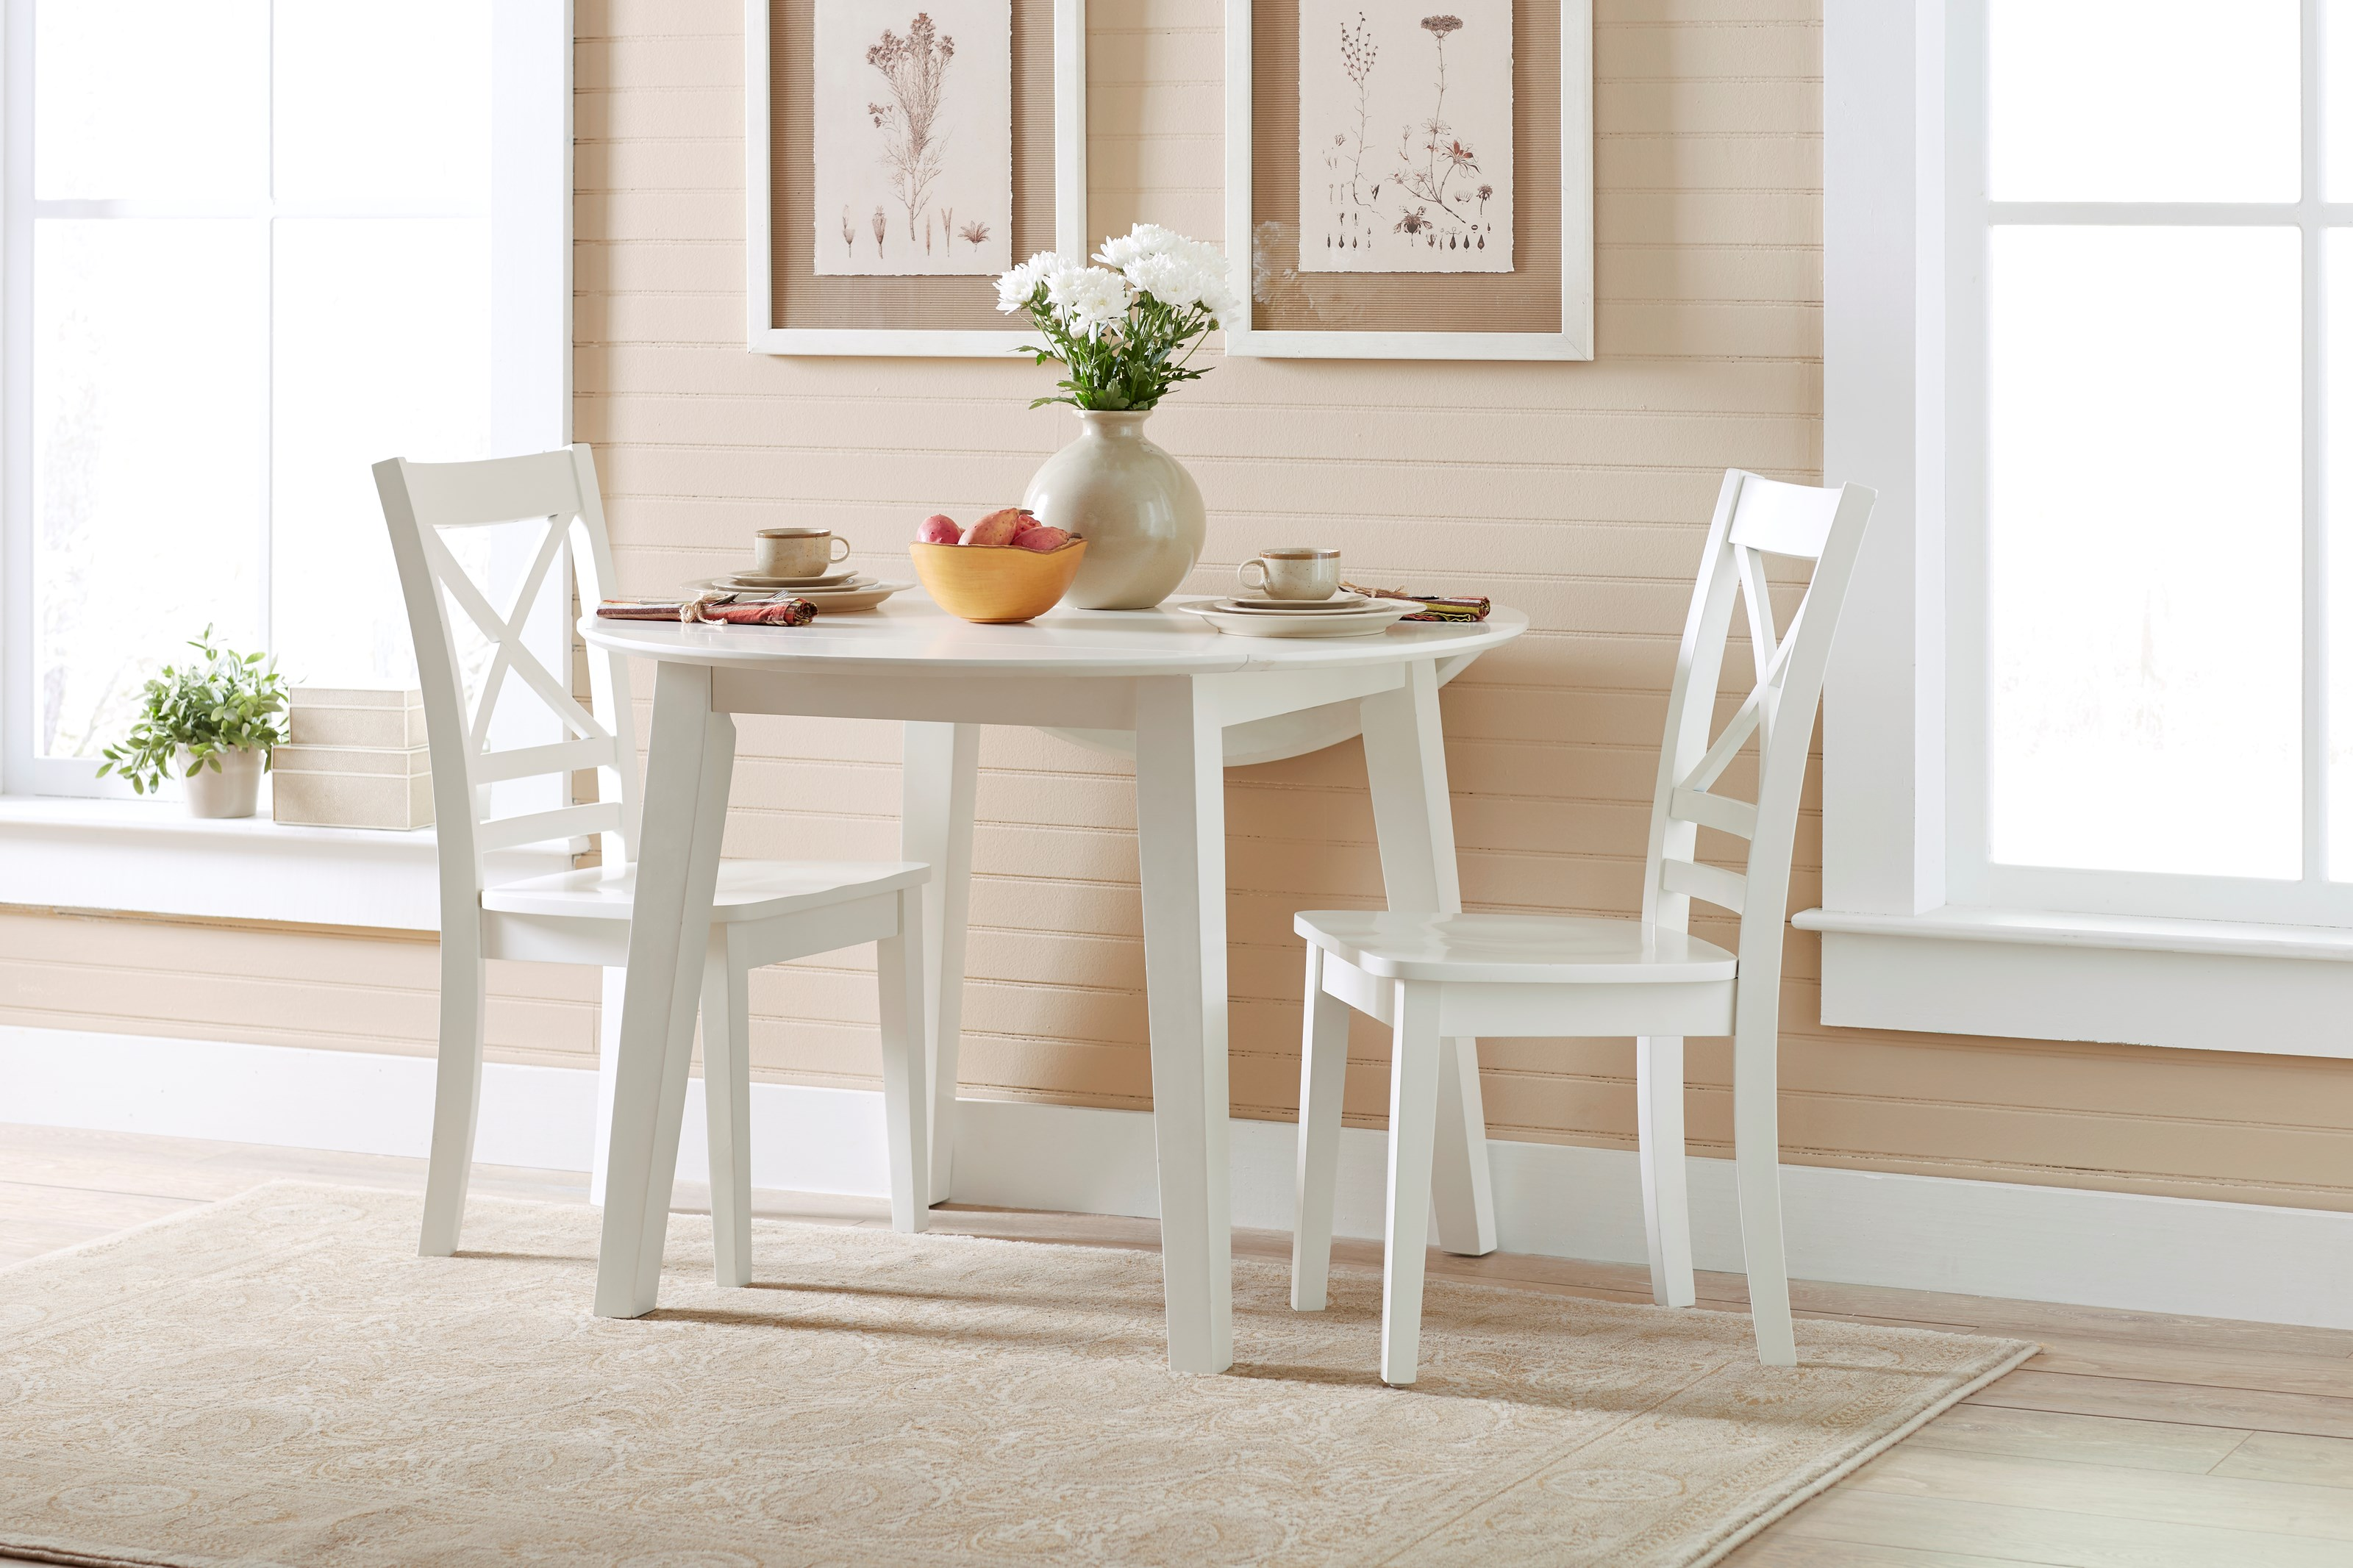 Jofran Simplicity Round Table and 2 Chair Set with X